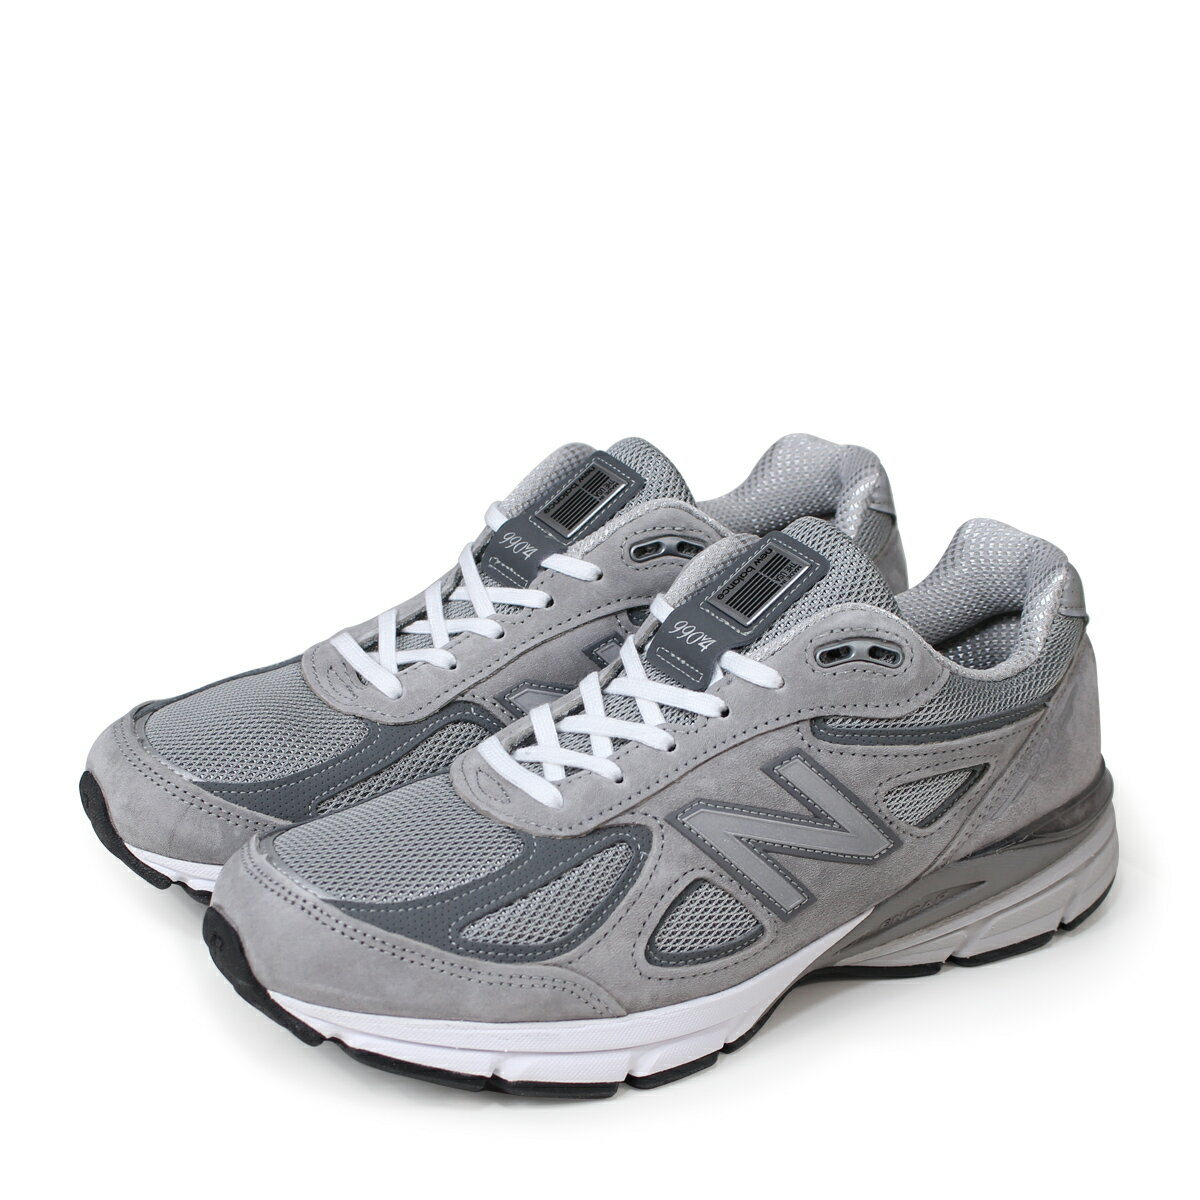 half off 6d9c6 d20df new balance 990 New Balance sneakers men D Wise gray M990GL4 [193]